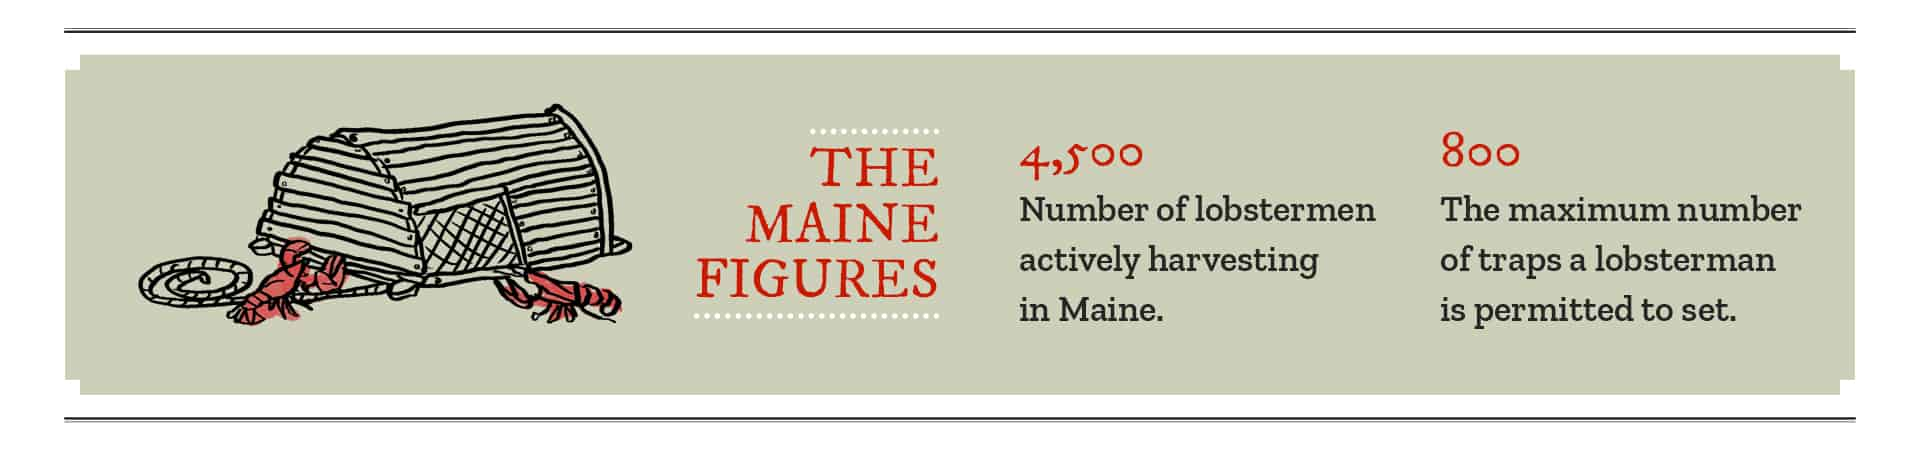 Maine lobstering Faqs